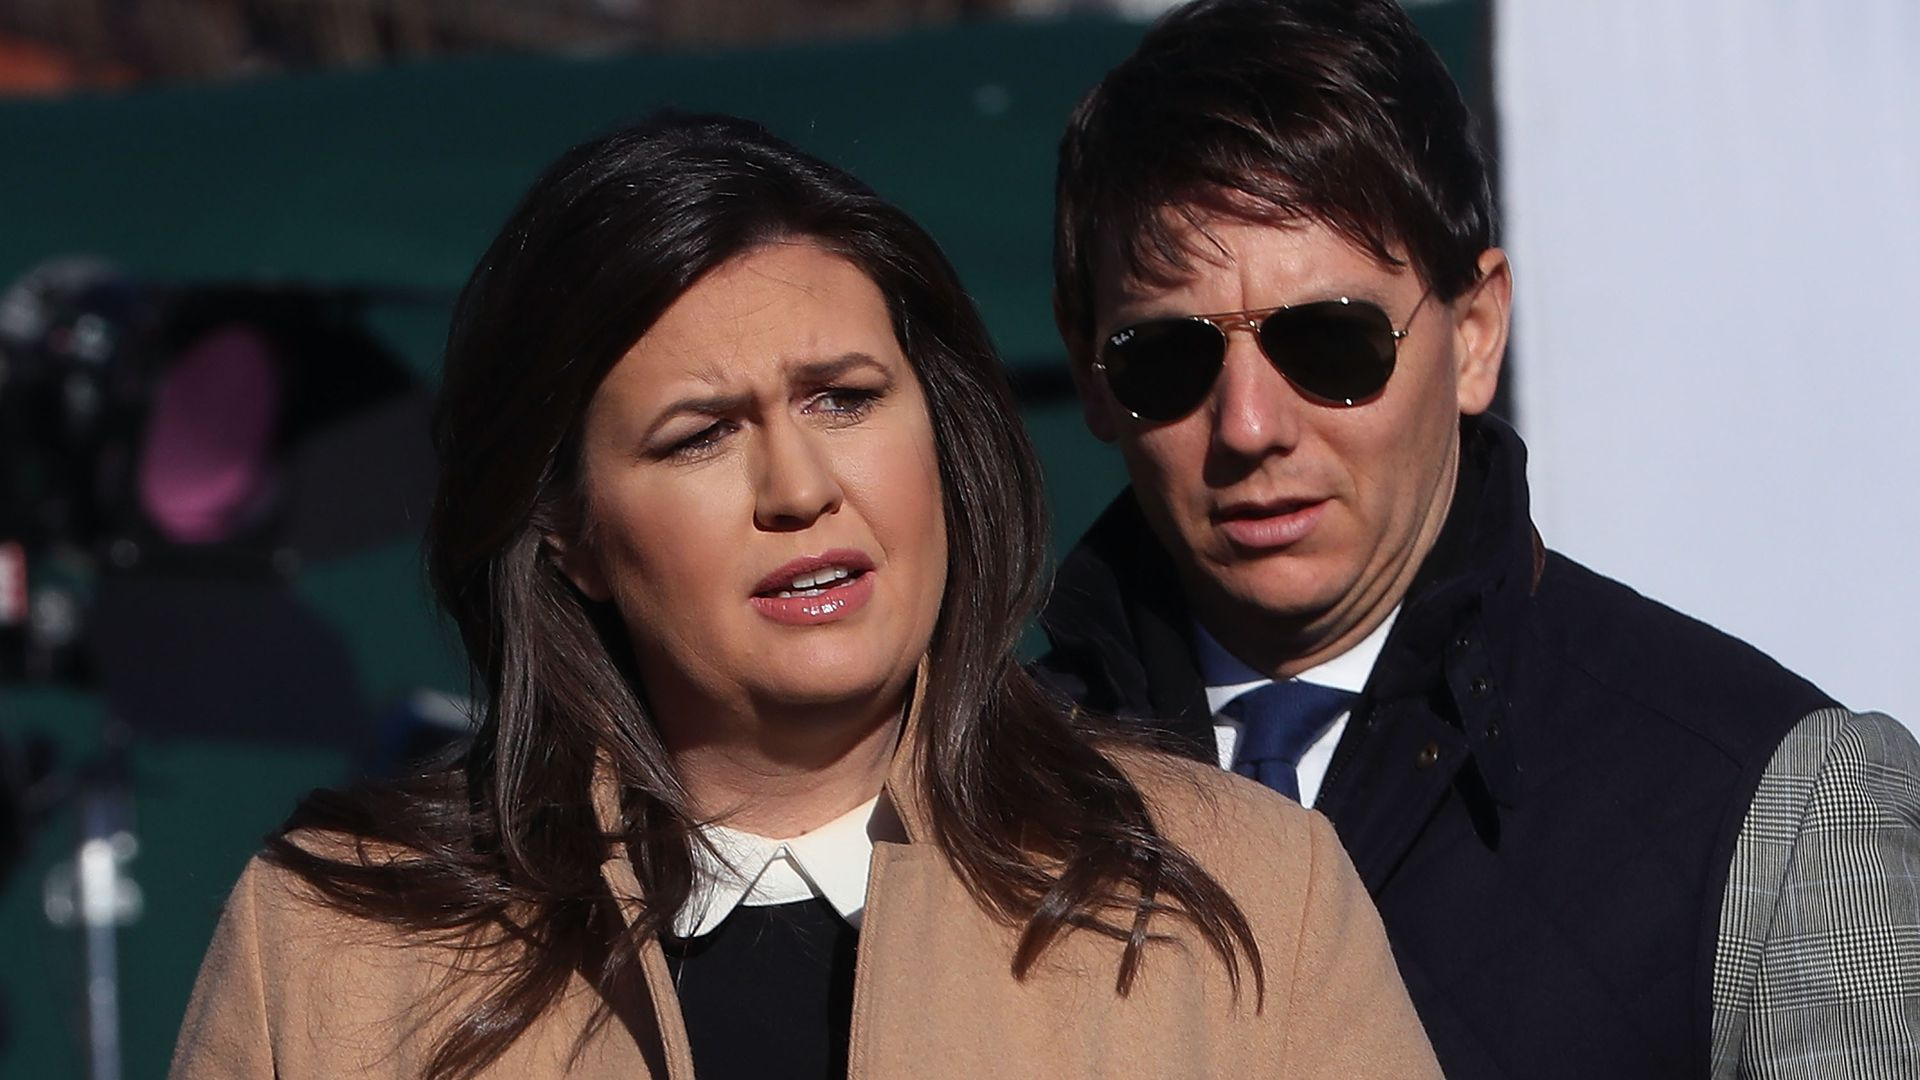 Sarah Sanders wears a quote while being interview outside the White House